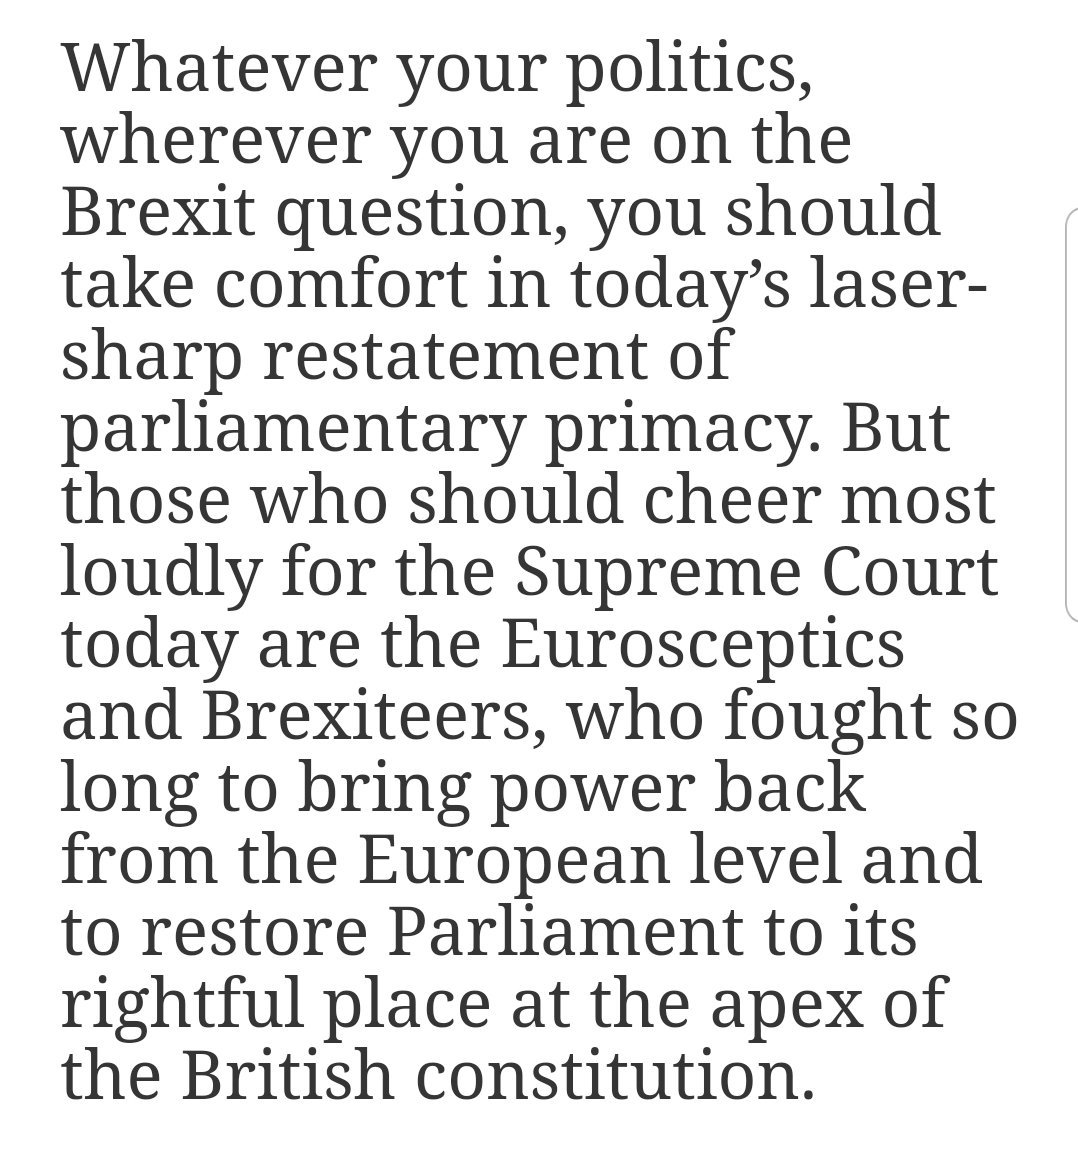 Those who should cheer most loudly for the Supreme Court today are the eurosceptics and Brexiteers. Hahahaha. Like thats going to happen. blogs.spectator.co.uk/2019/09/brexit…